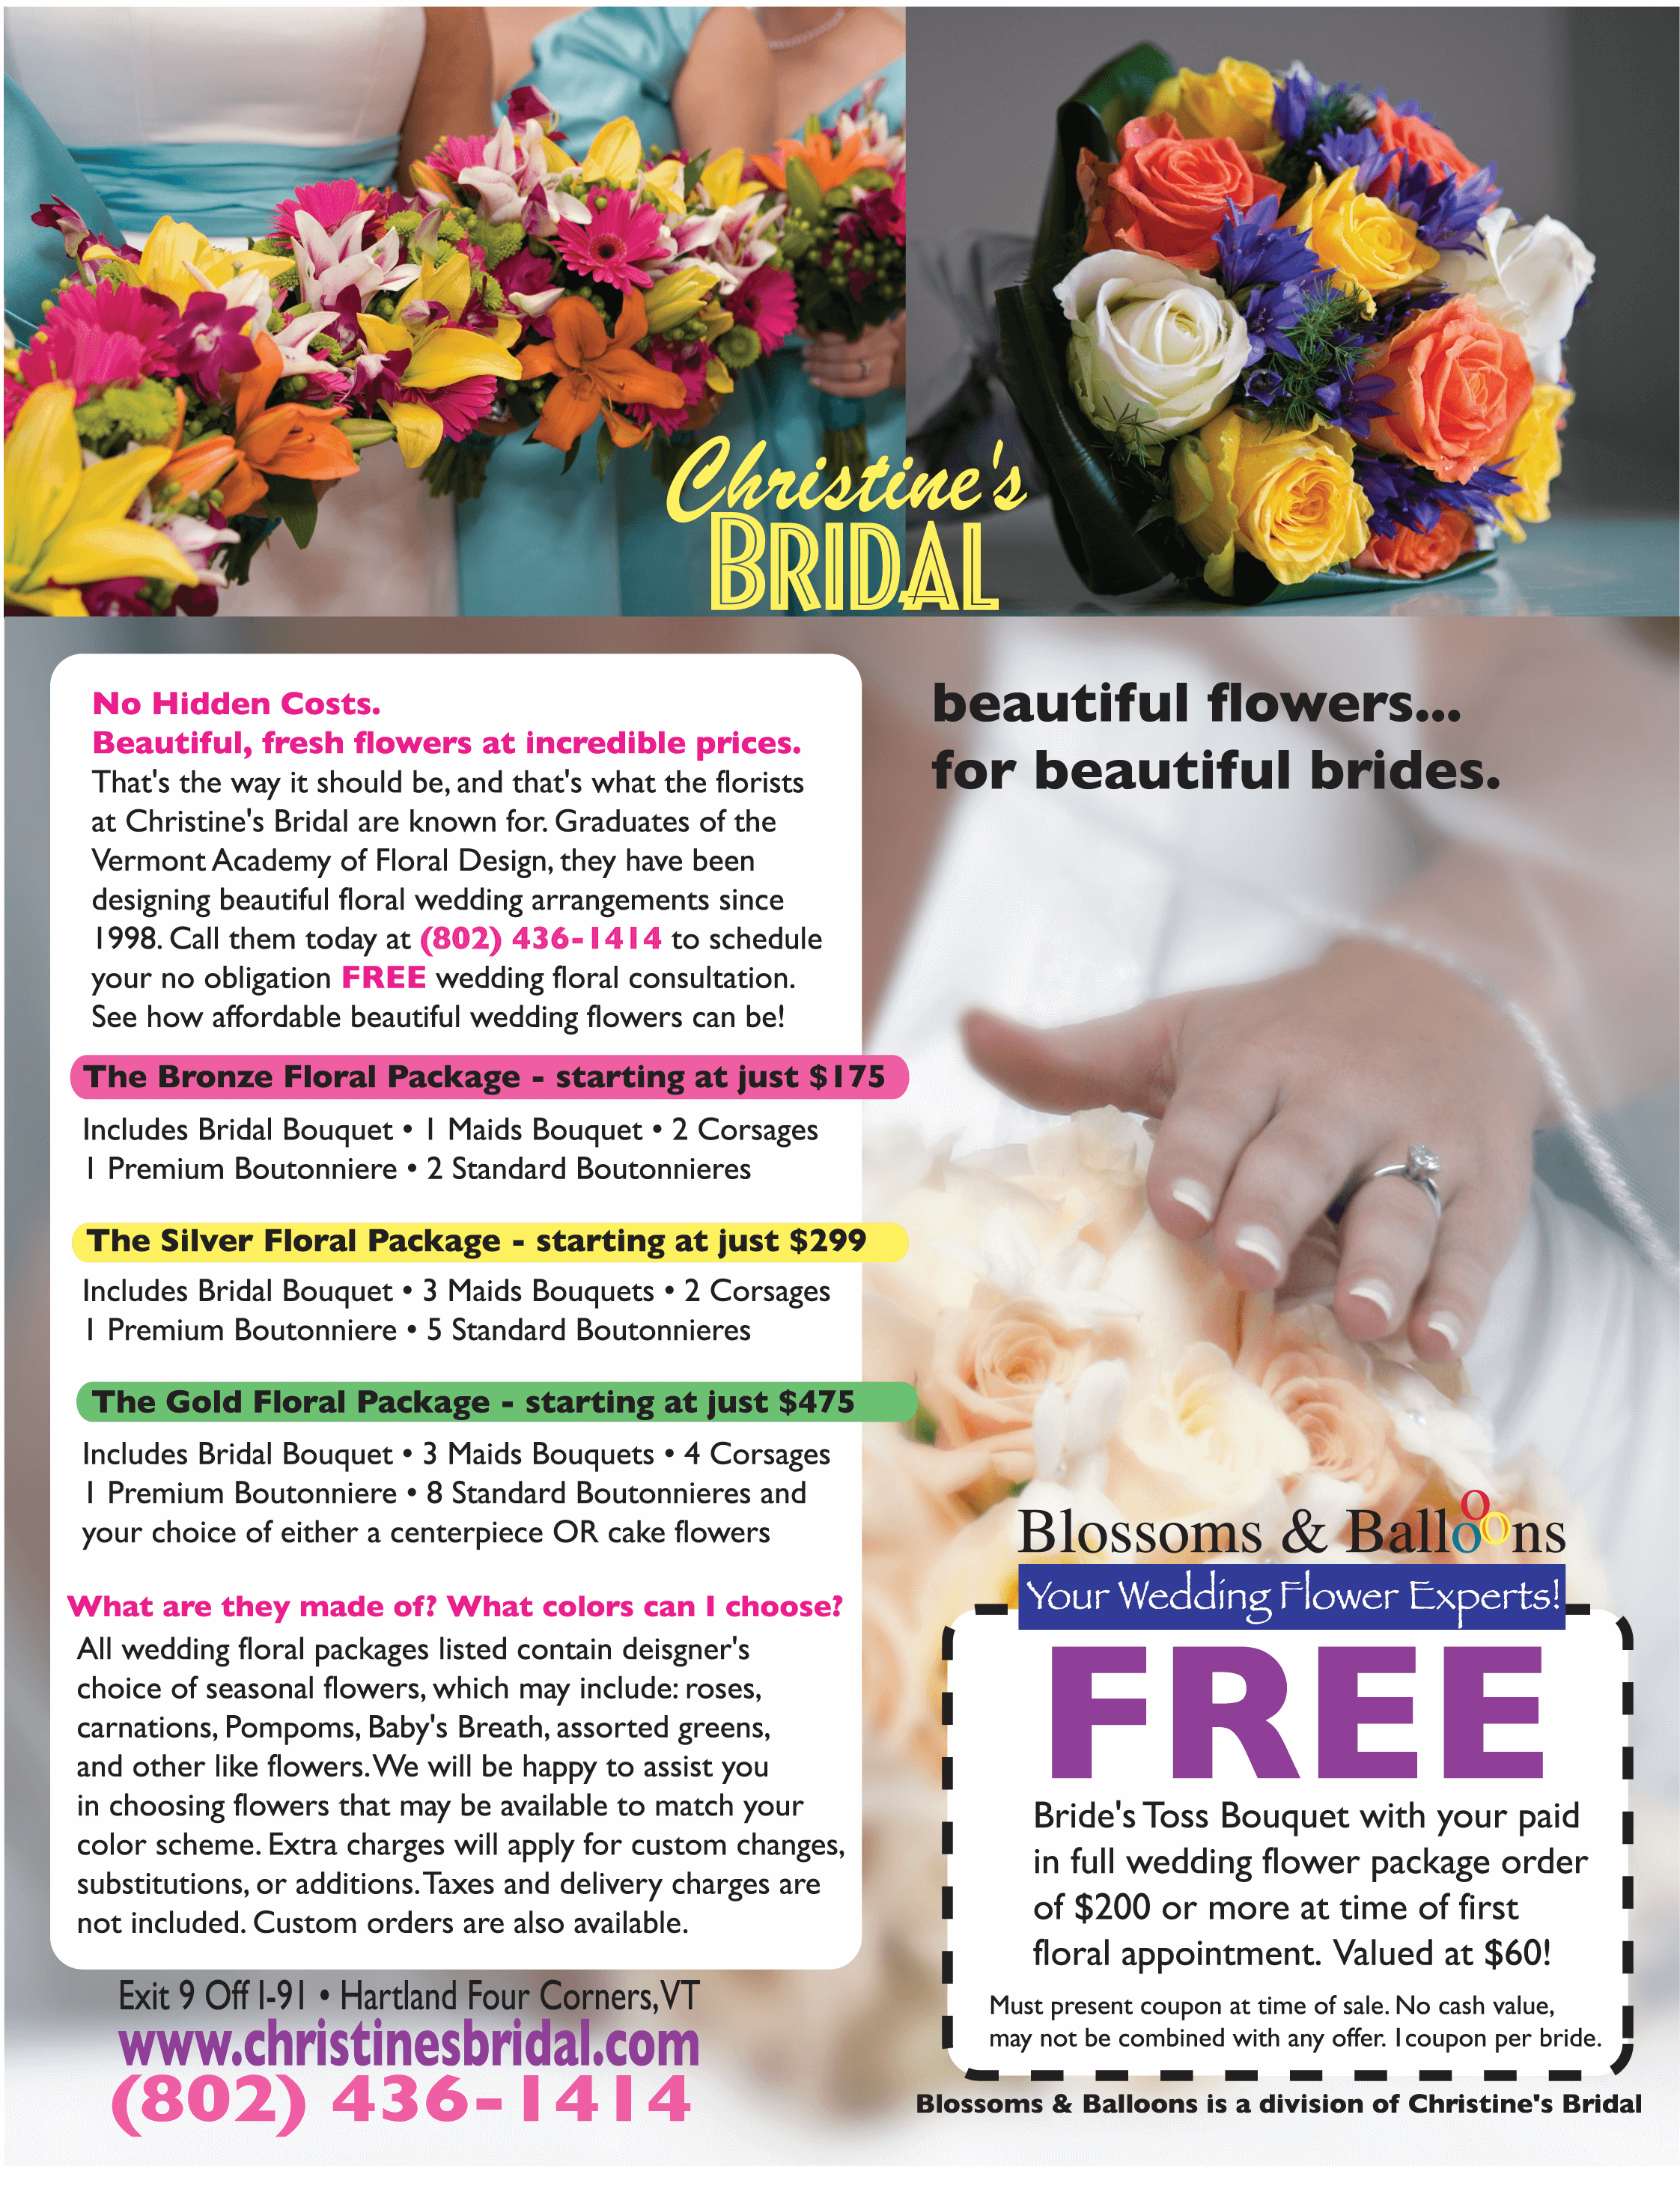 Wedding Flowers, Packages and Promotions at Christine's Bridal.